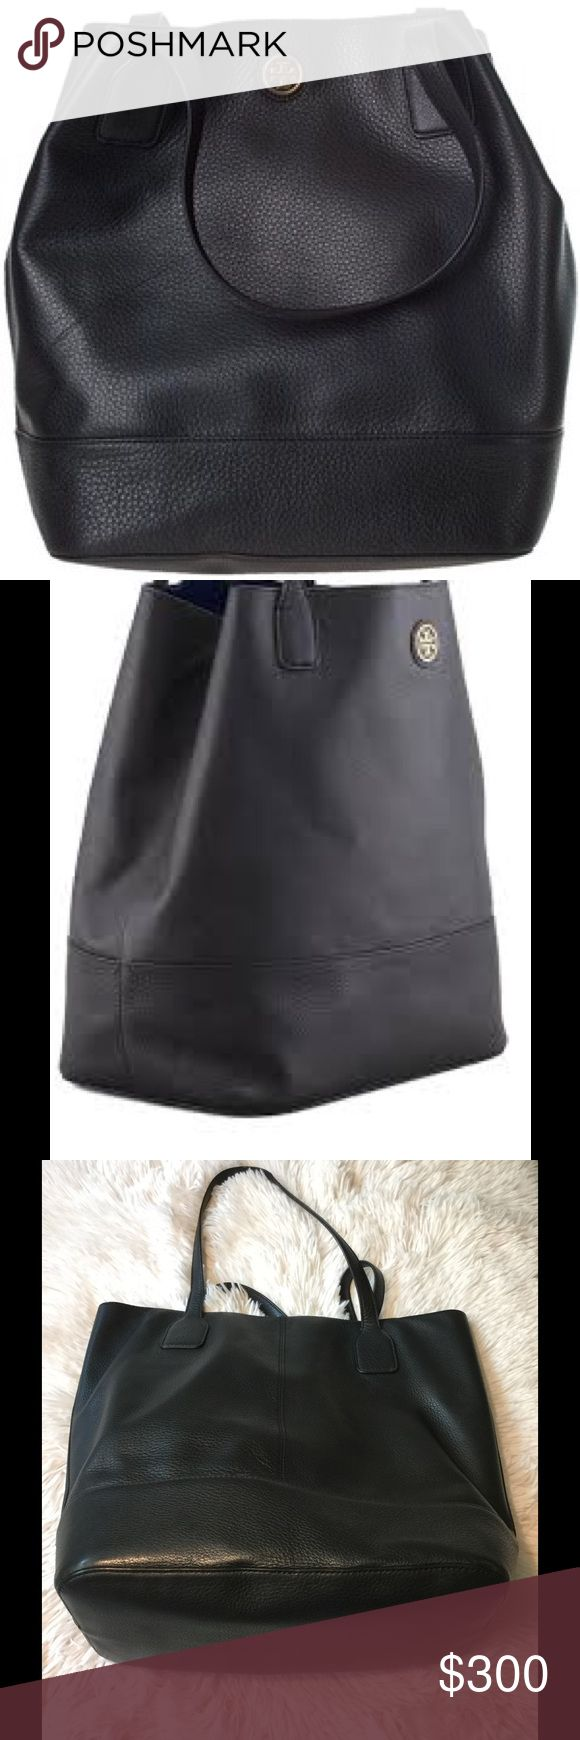 """🌹Tory Burch Michelle Leather Tote Bag, Black 🌹 🌹Sold out Tory Burch debuts the Michelle tote with a clean profile, roomy bucket body, and enduring leather construction to suit all your weekend occasions. Classic pebbled leather. Flat shoulder straps with 8 1/2"""" drop. Small Tory Burch double-T logo at top center. Open top. Roomy, bucket-like body holds all the essentials. Easy-to-clean PVC lining. Inside, buckled strap inverts sides to create trapezoidal shape. 14""""H x 12""""W x 9""""D; weighs…"""